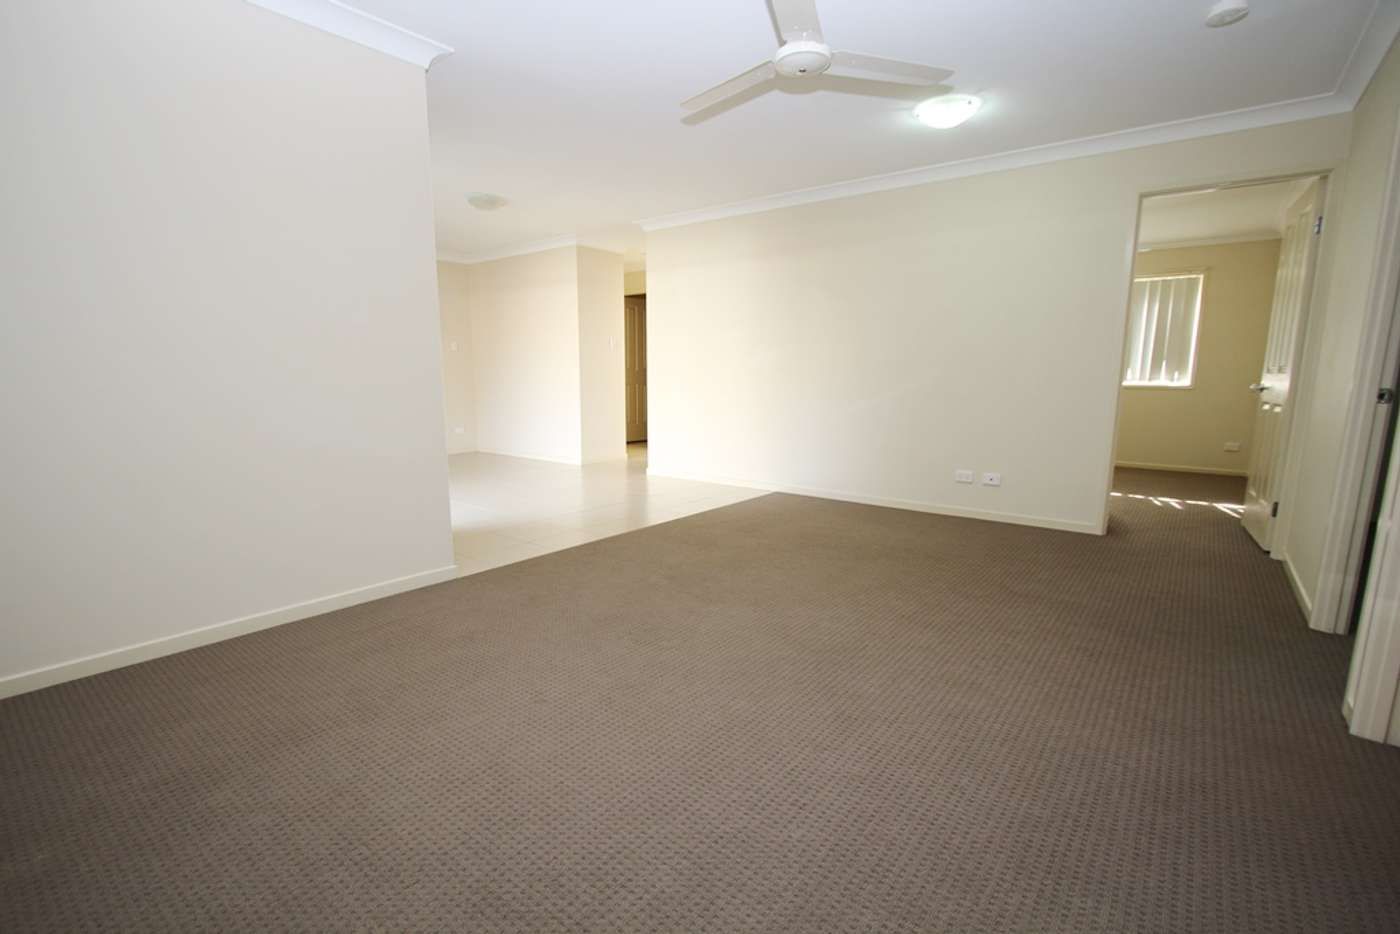 Seventh view of Homely house listing, 17 Chanel Court, Wulkuraka QLD 4305